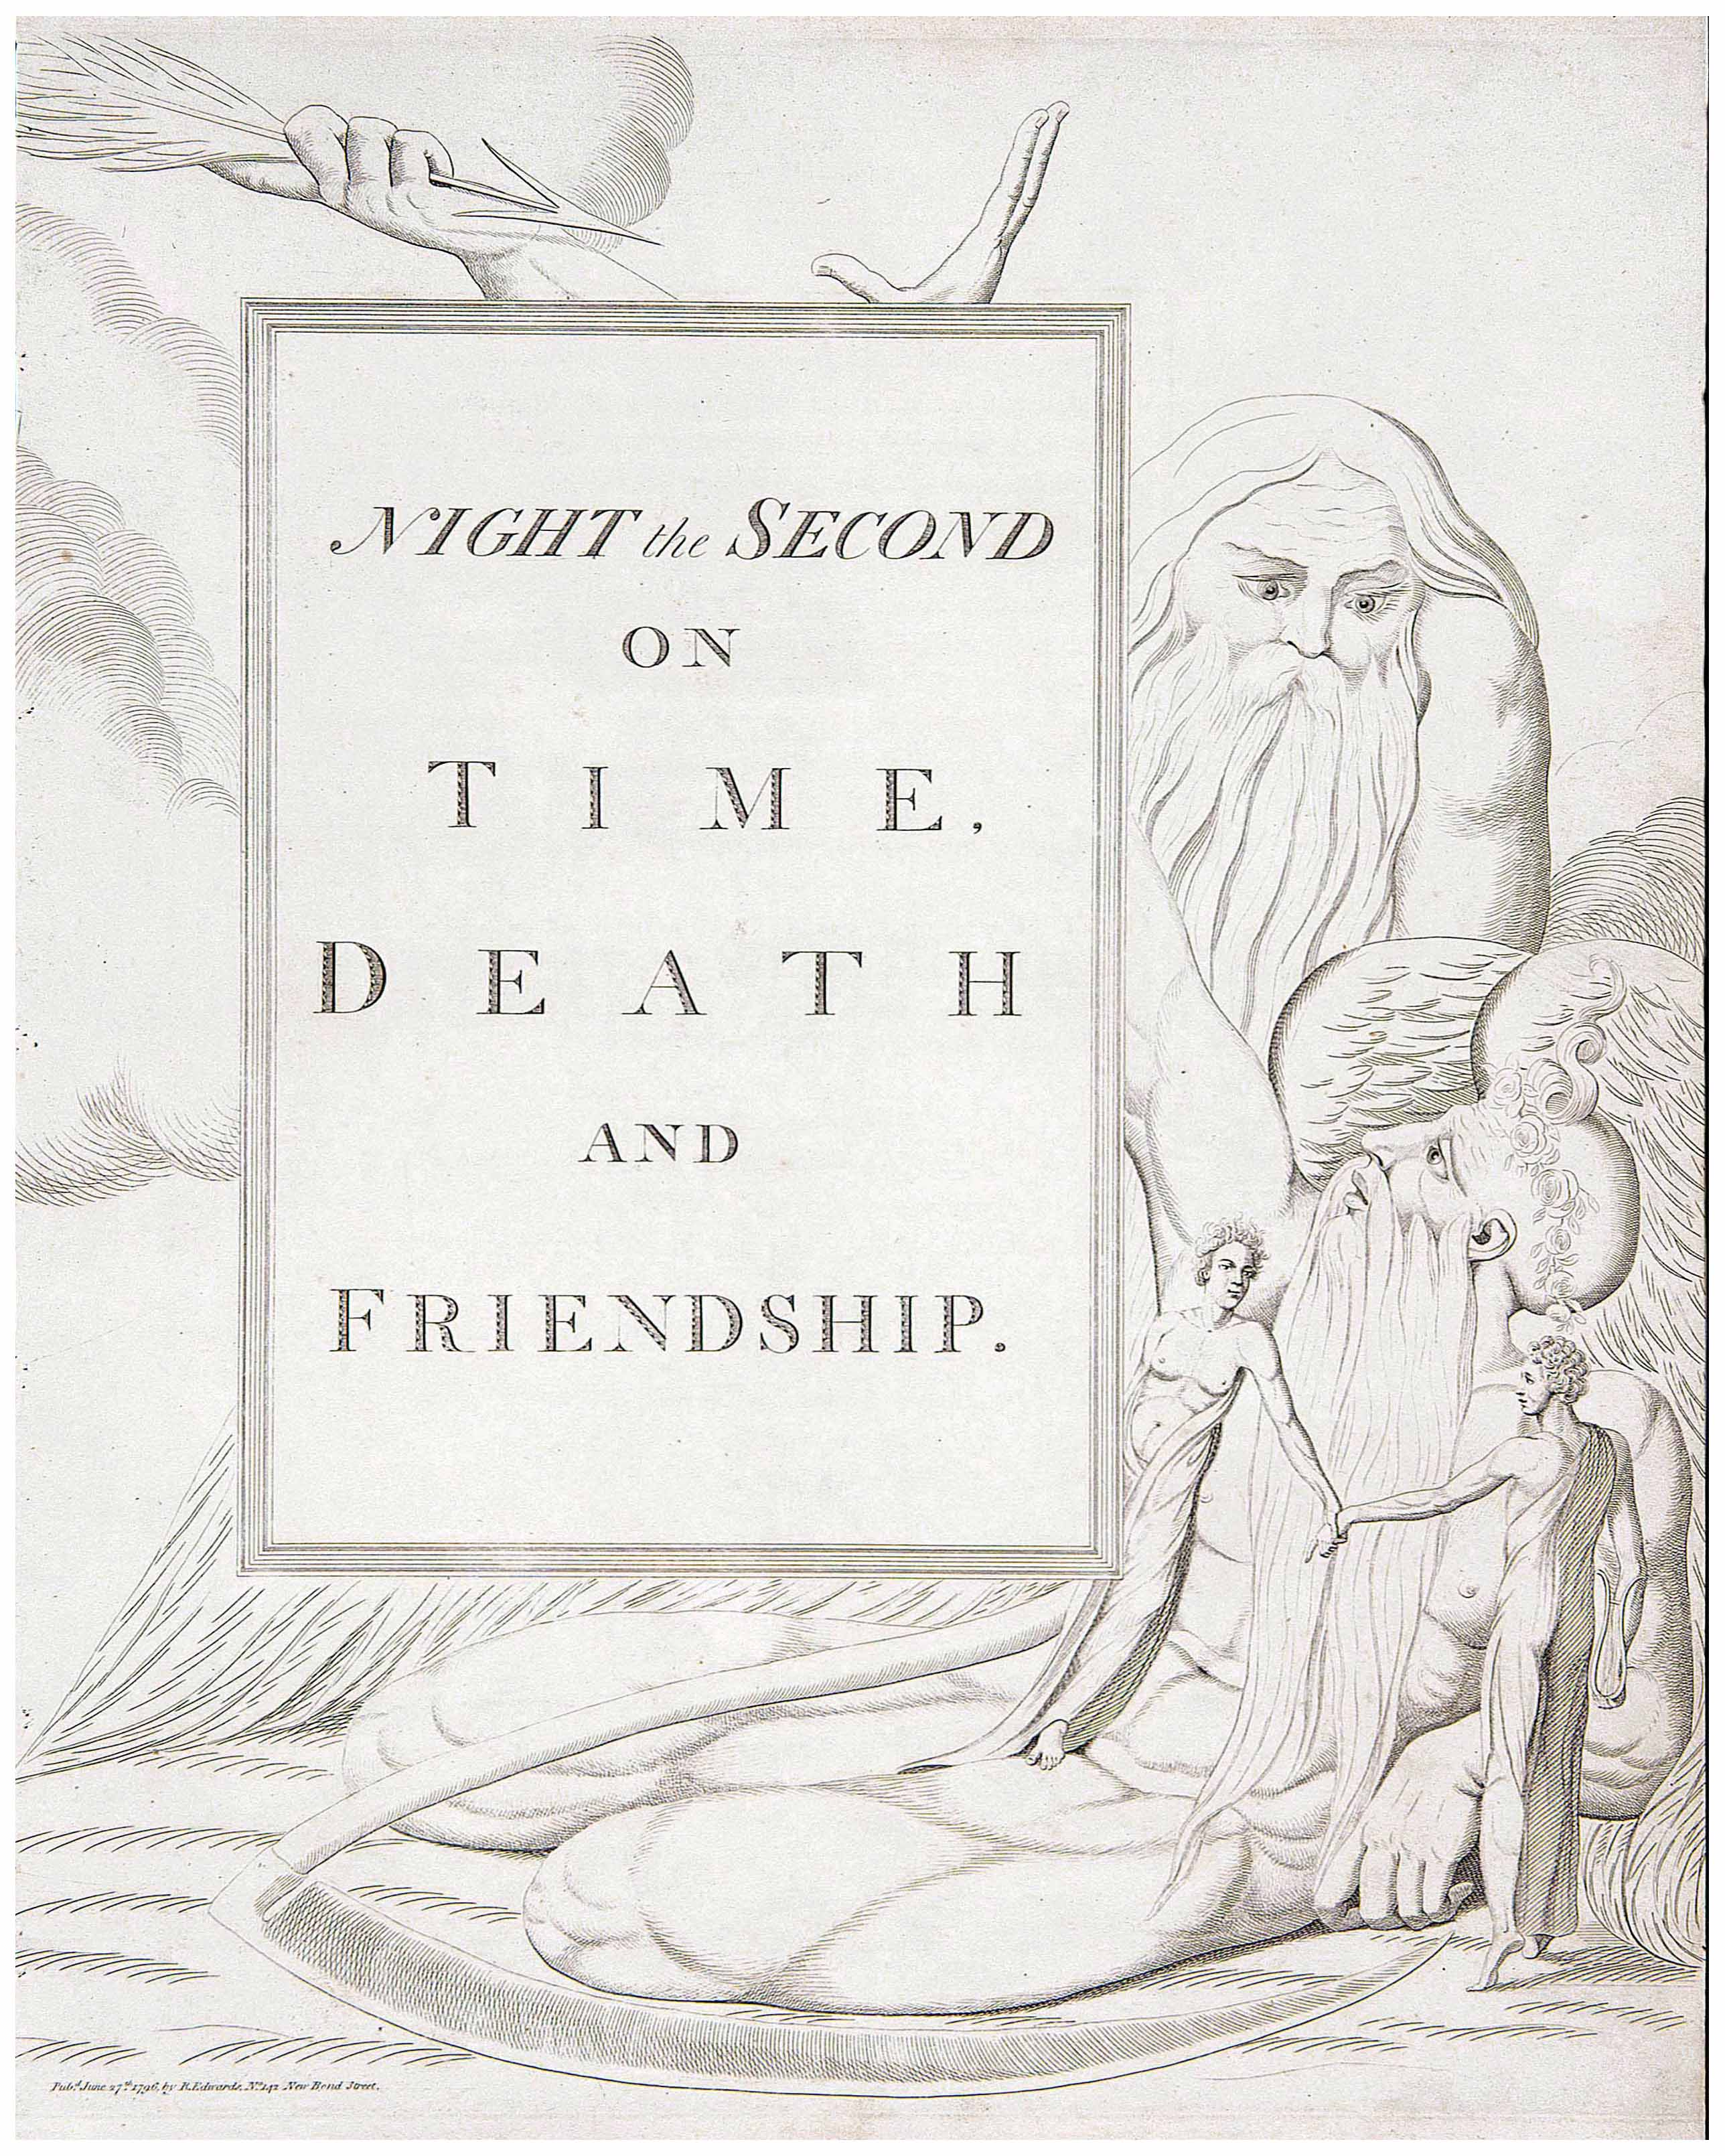 NIGHT the SECOND 	ON 	TIME, 	DEATH 	AND 	FRIENDSHIP. 	Pubd. June 27th. 1796, by R. Edwards, No. 142 New Bond Street.